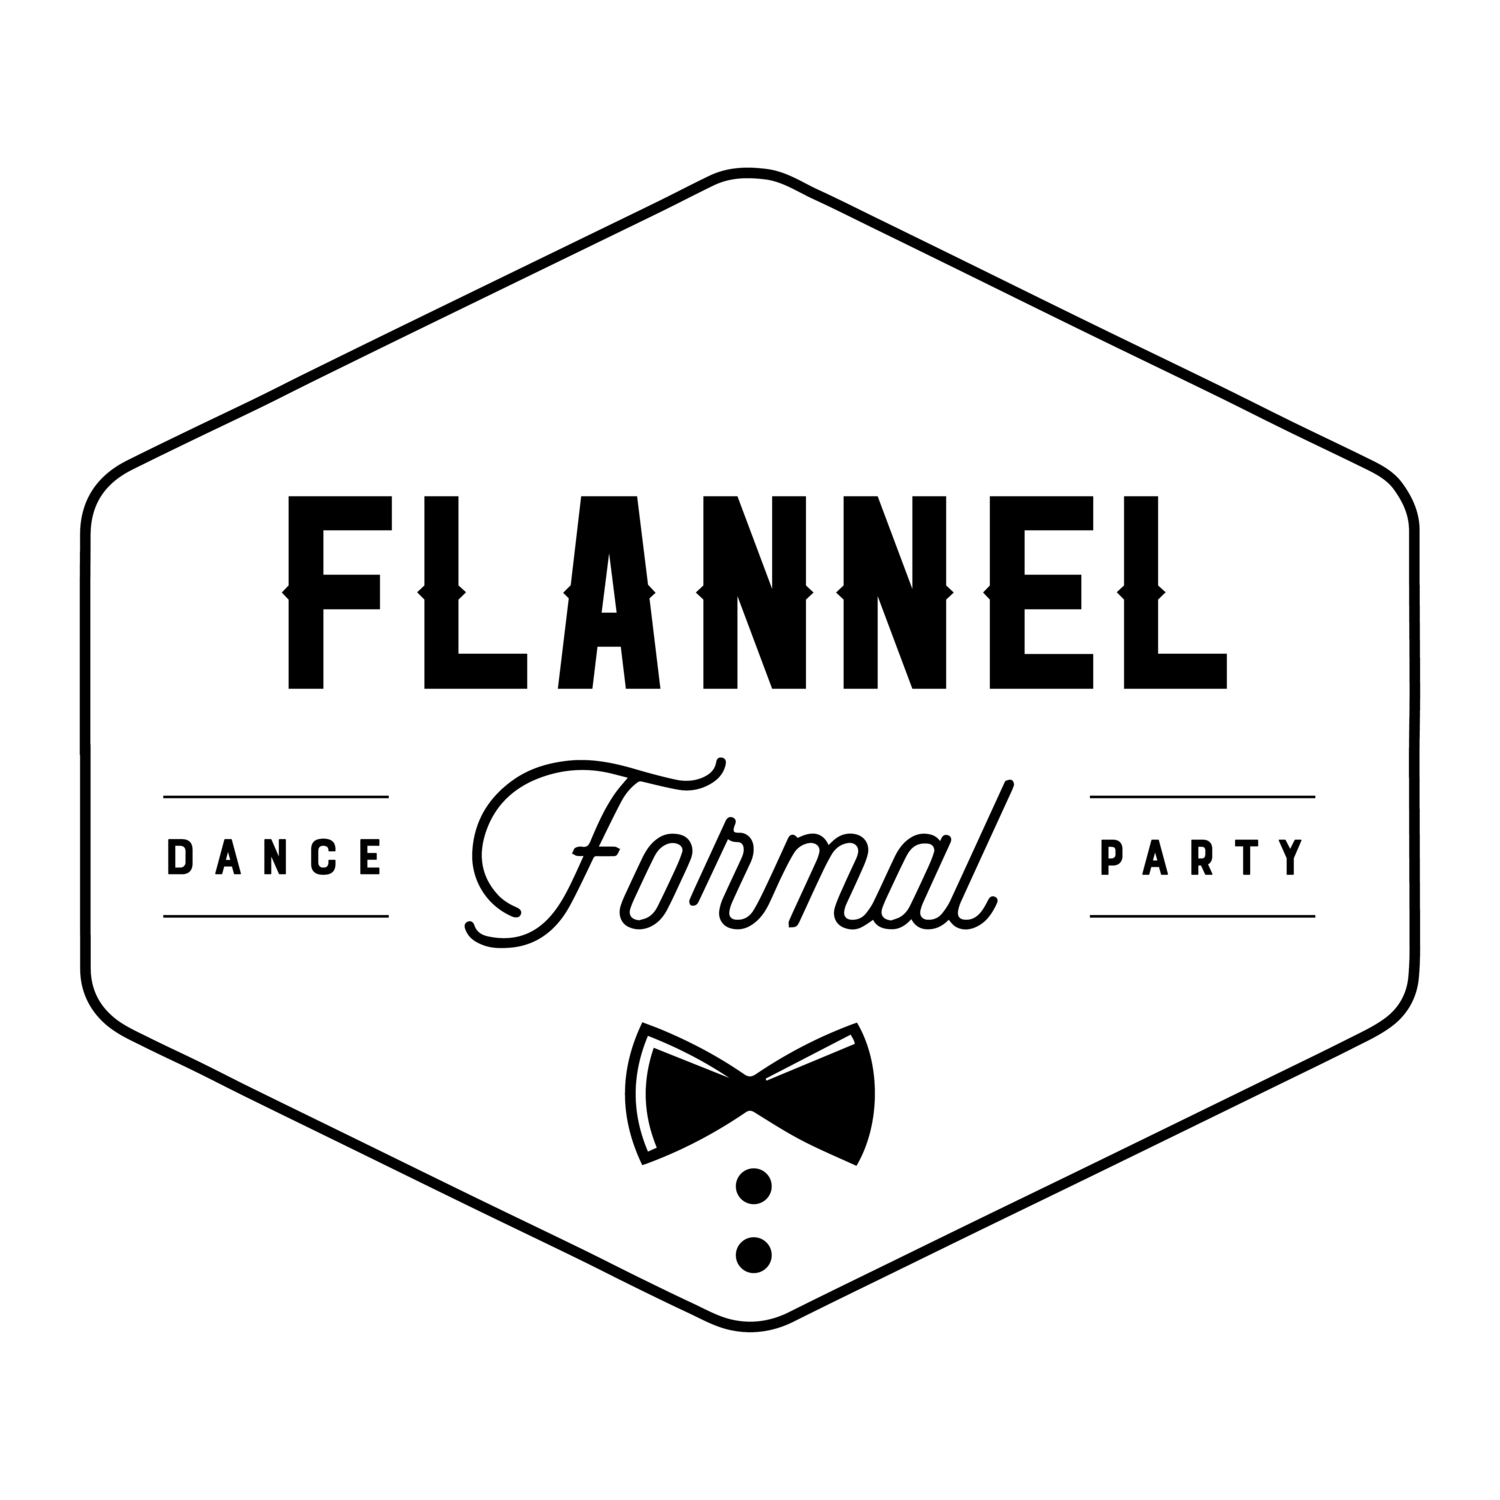 Flannel Formal